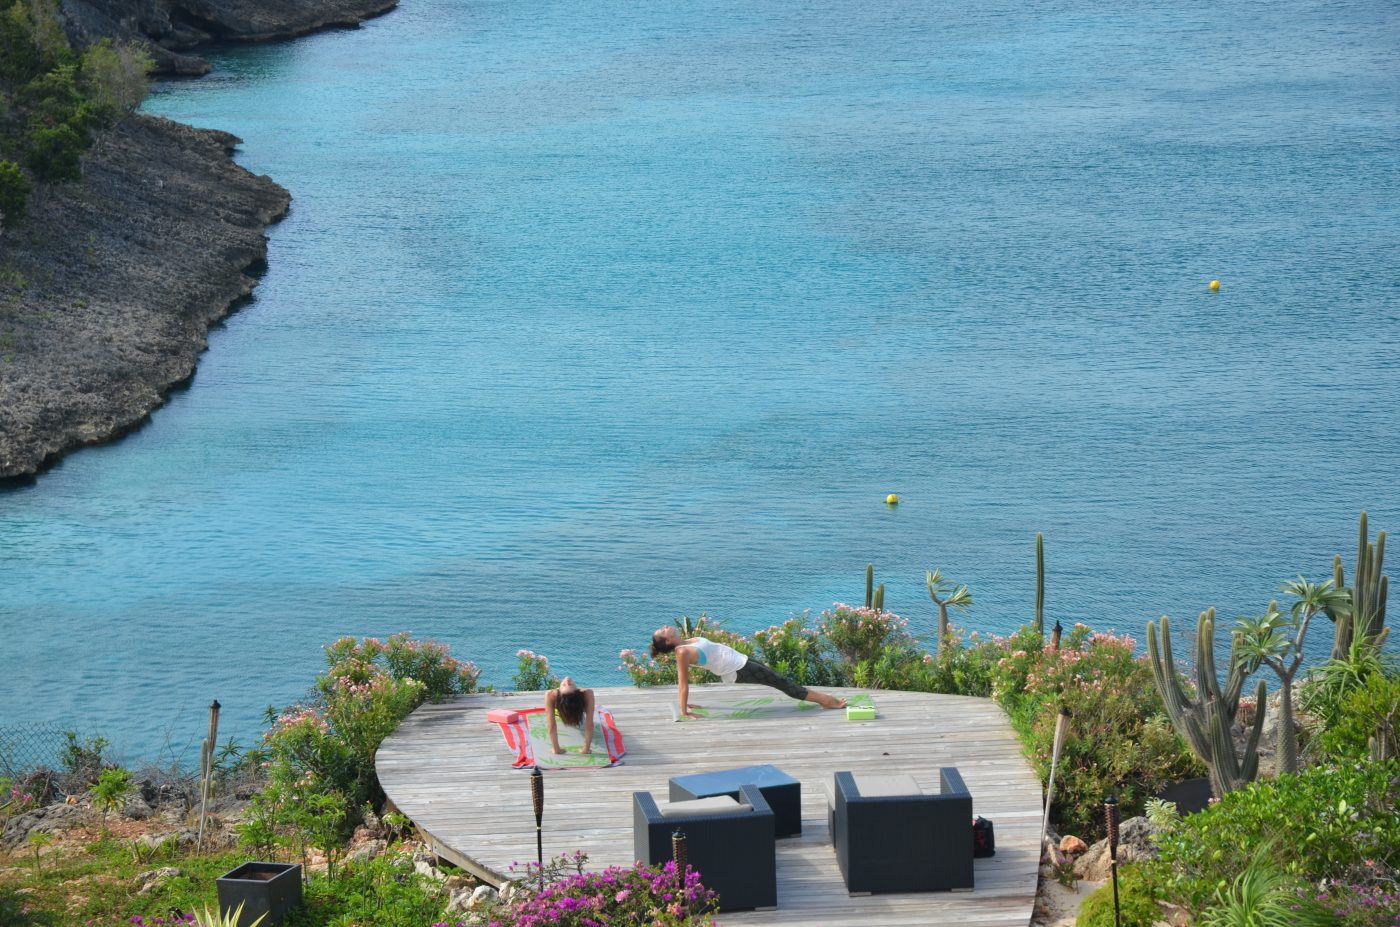 The Top Three Things to Do in Anguilla